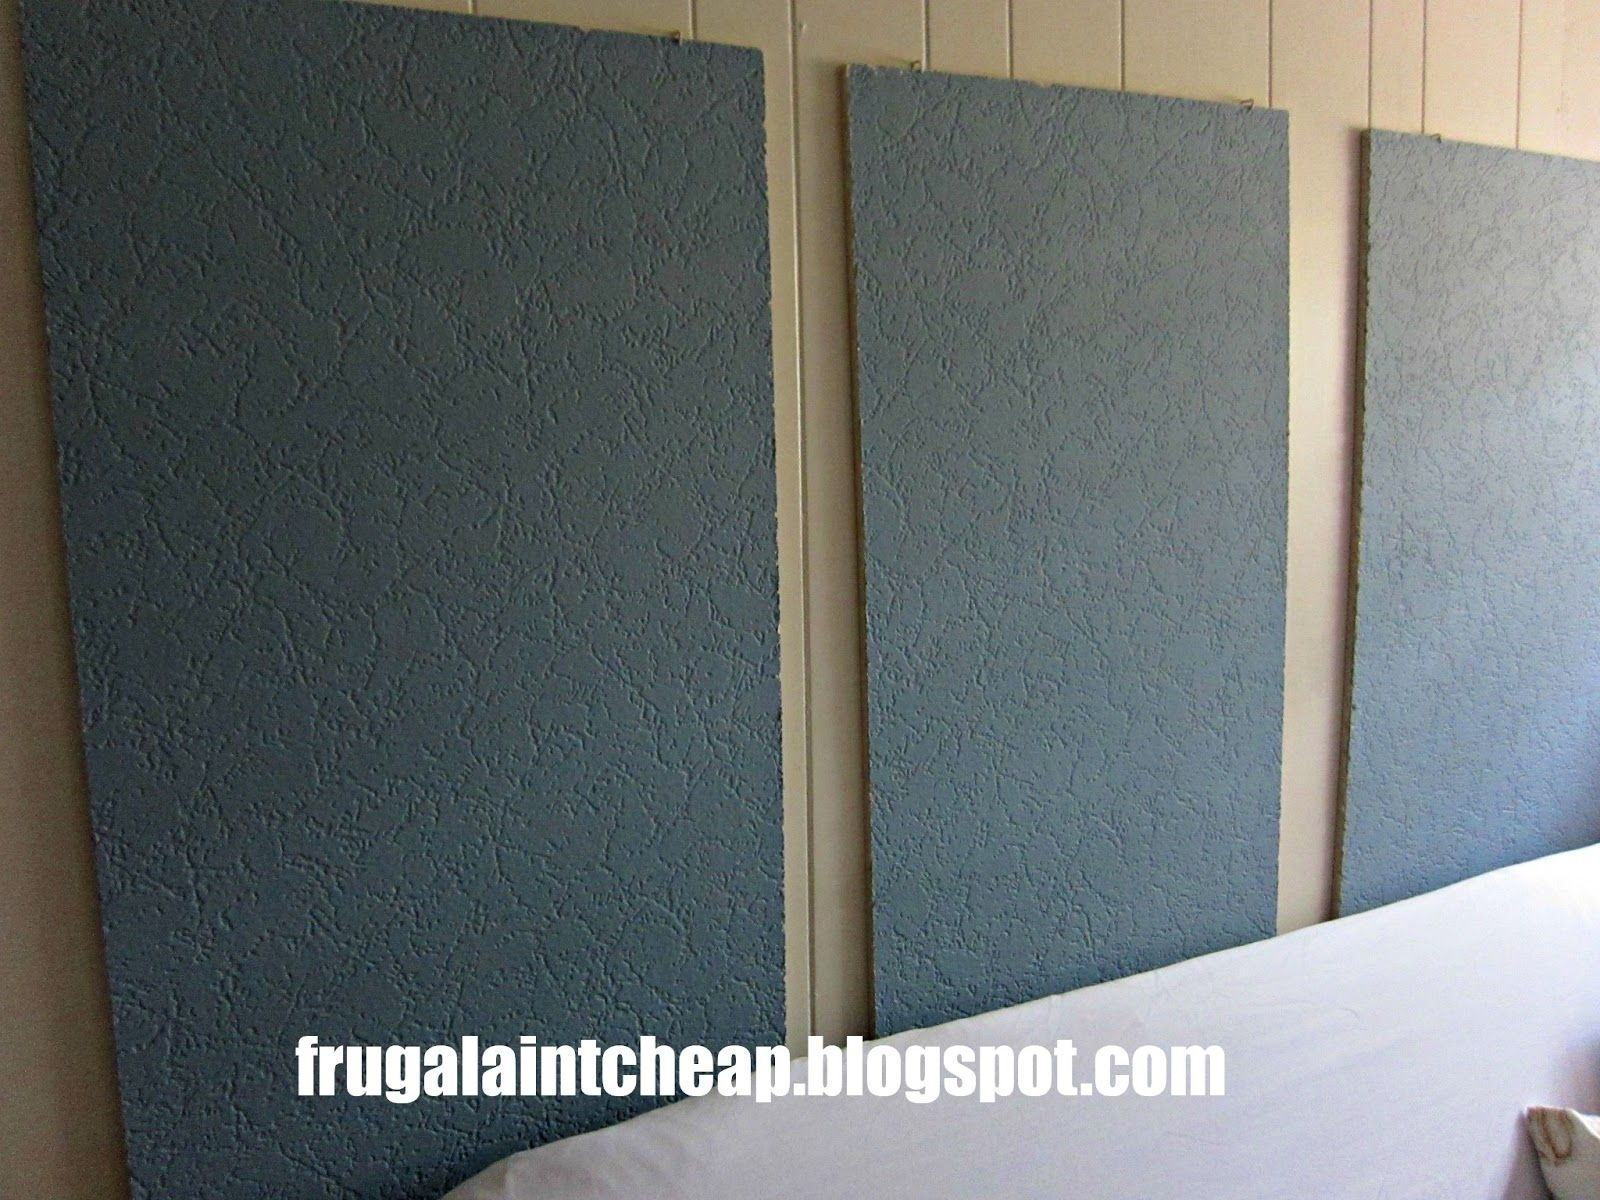 Frugal Ainu0027t Cheap: Soundproofing A Room   Need To Soundproof My Basement